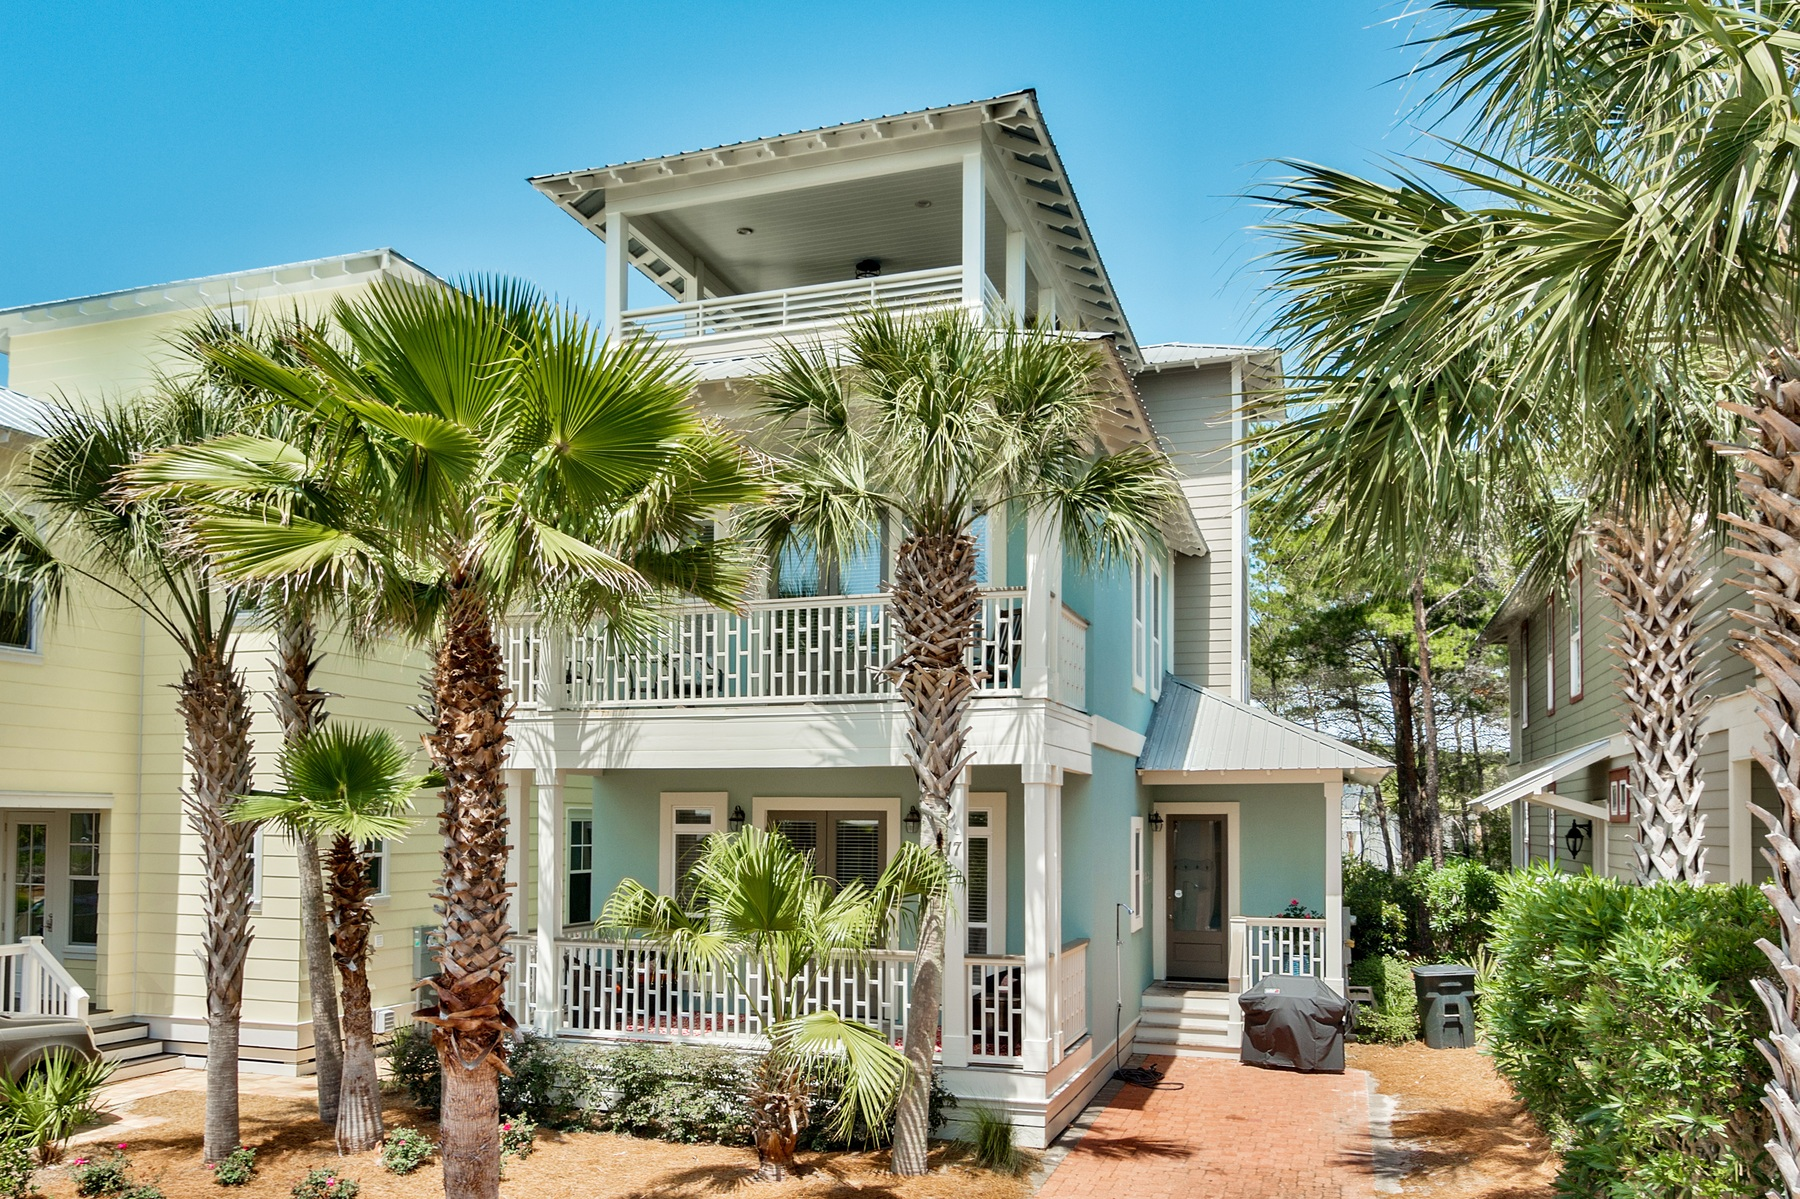 Maison unifamiliale pour l Vente à AMAZING LOCATION WITH GREAT RENTAL POTENTIAL AND LUXURY AMENITIES 17 Sand Shovel Lane Inlet Beach, Florida, 32461 États-Unis